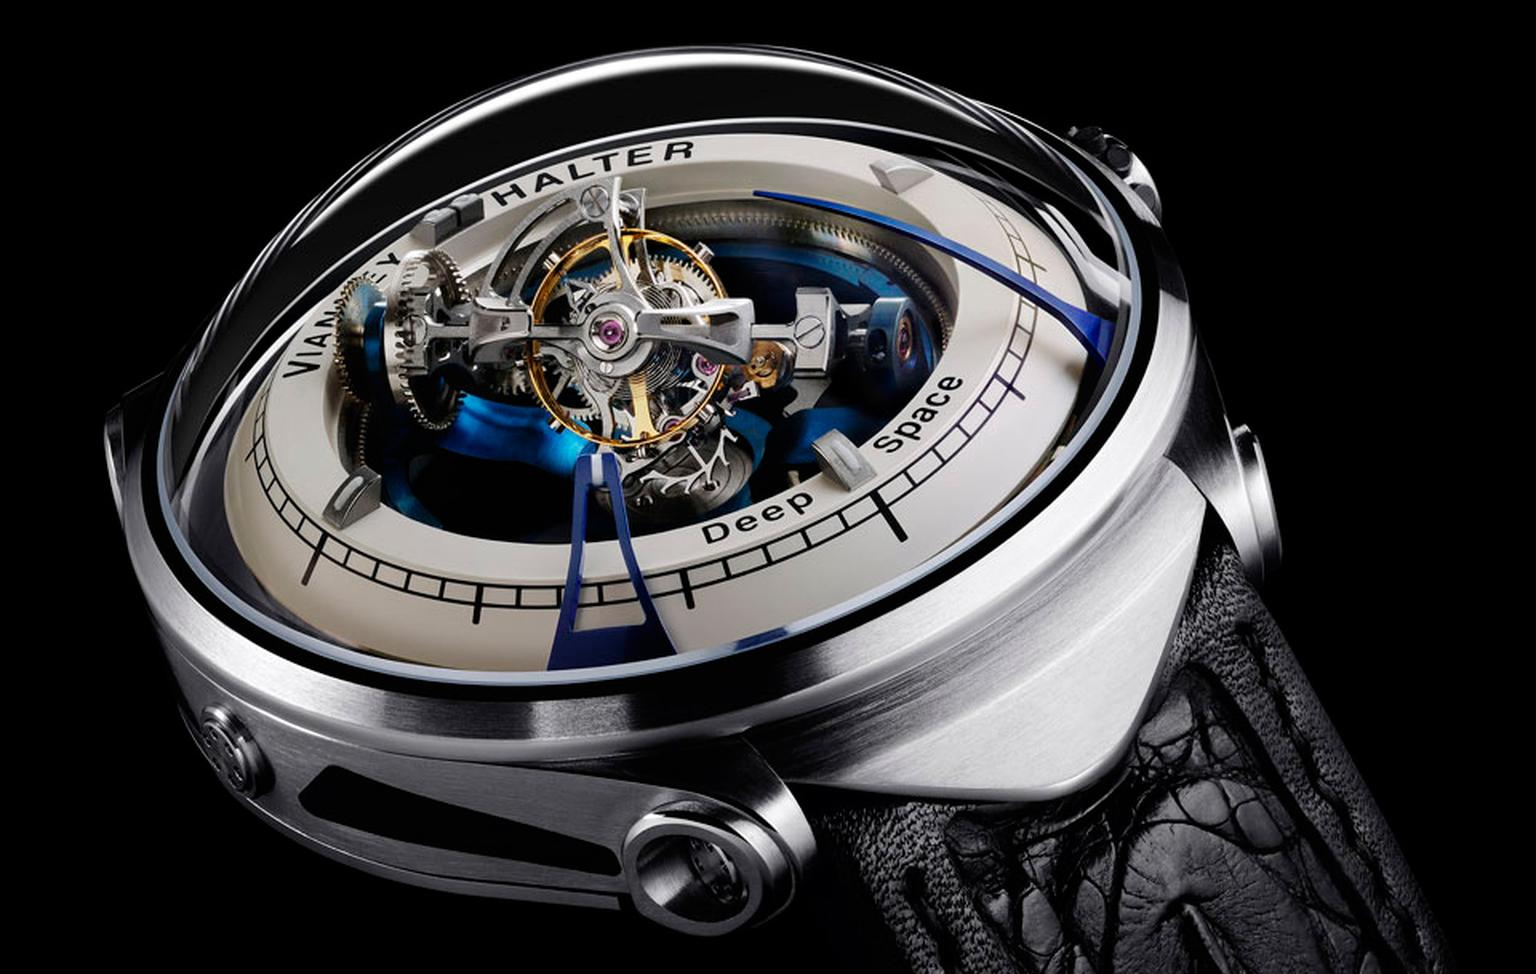 Vianney Halter Deep Space Tourbillon watch indicates the time with two blue curved nails: the longer nail indicated the minutes, the shorter one is for the hours.